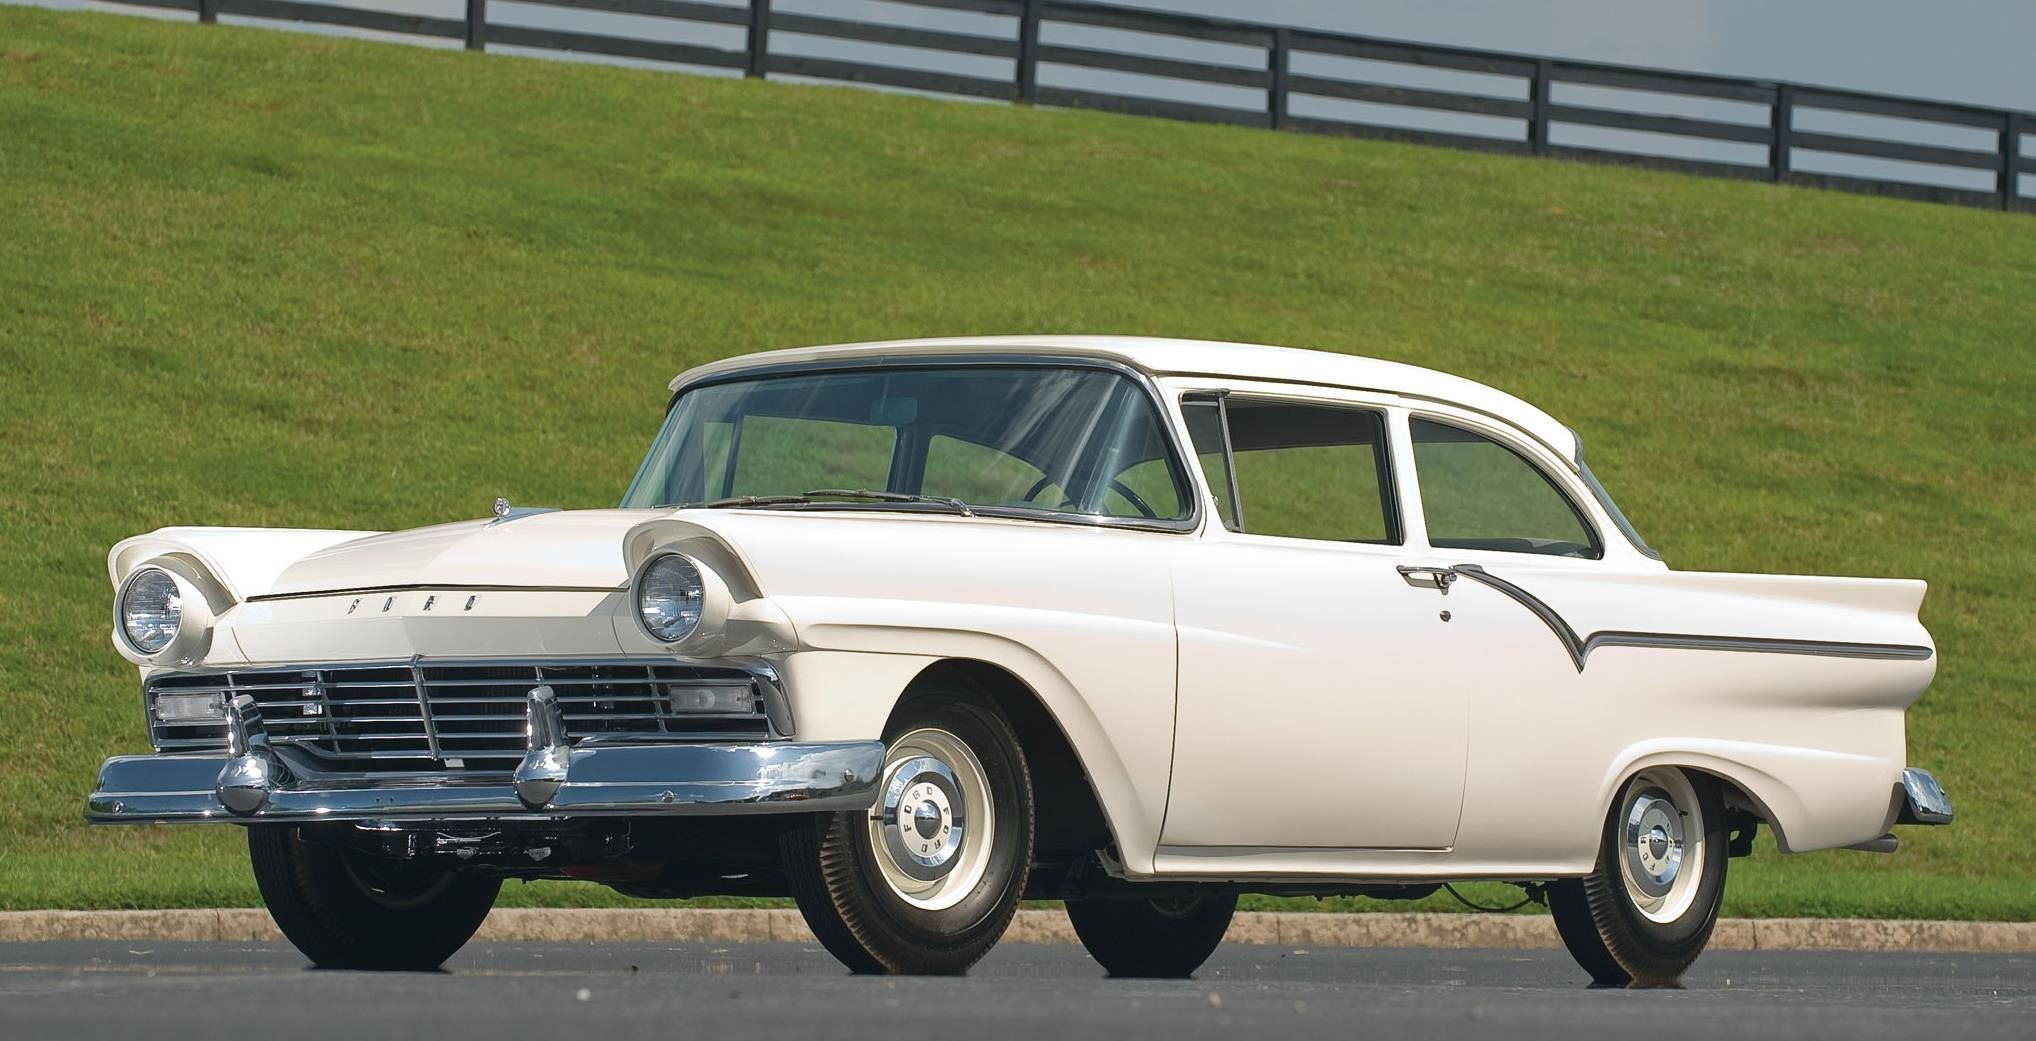 1957 ford custom 300 sedan seriously photo image gallery stuff to buy pinterest ford sedans and cars